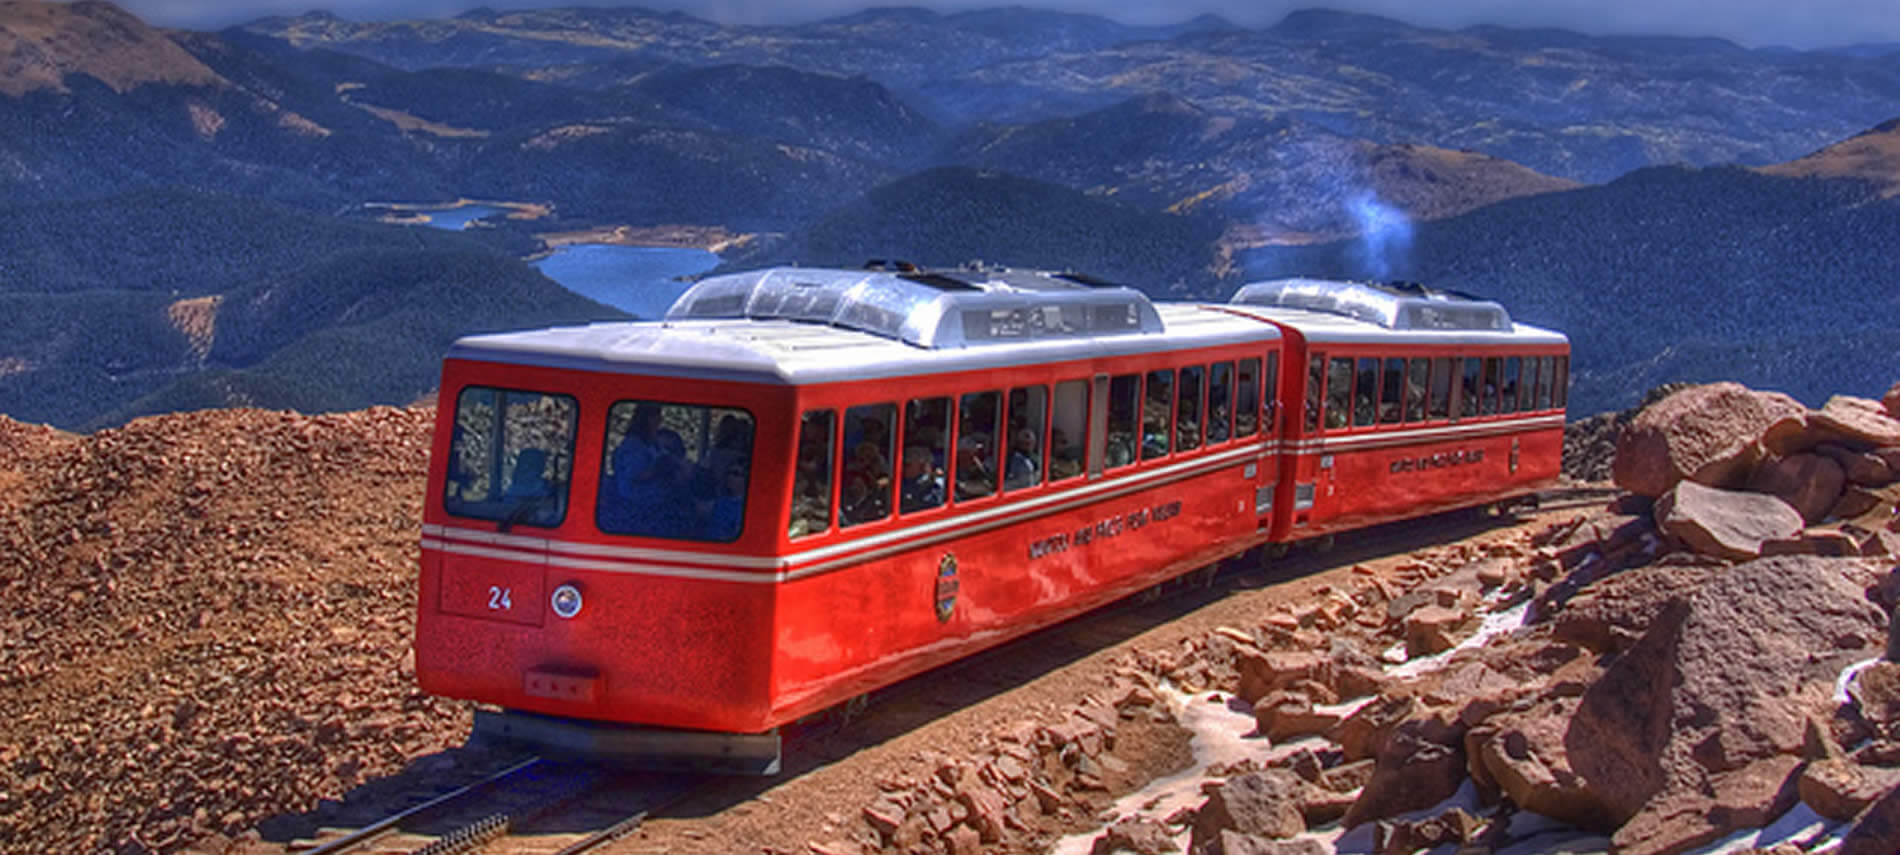 Bright red train going down a steep mountain surrounded by rocky and tree covered mountains